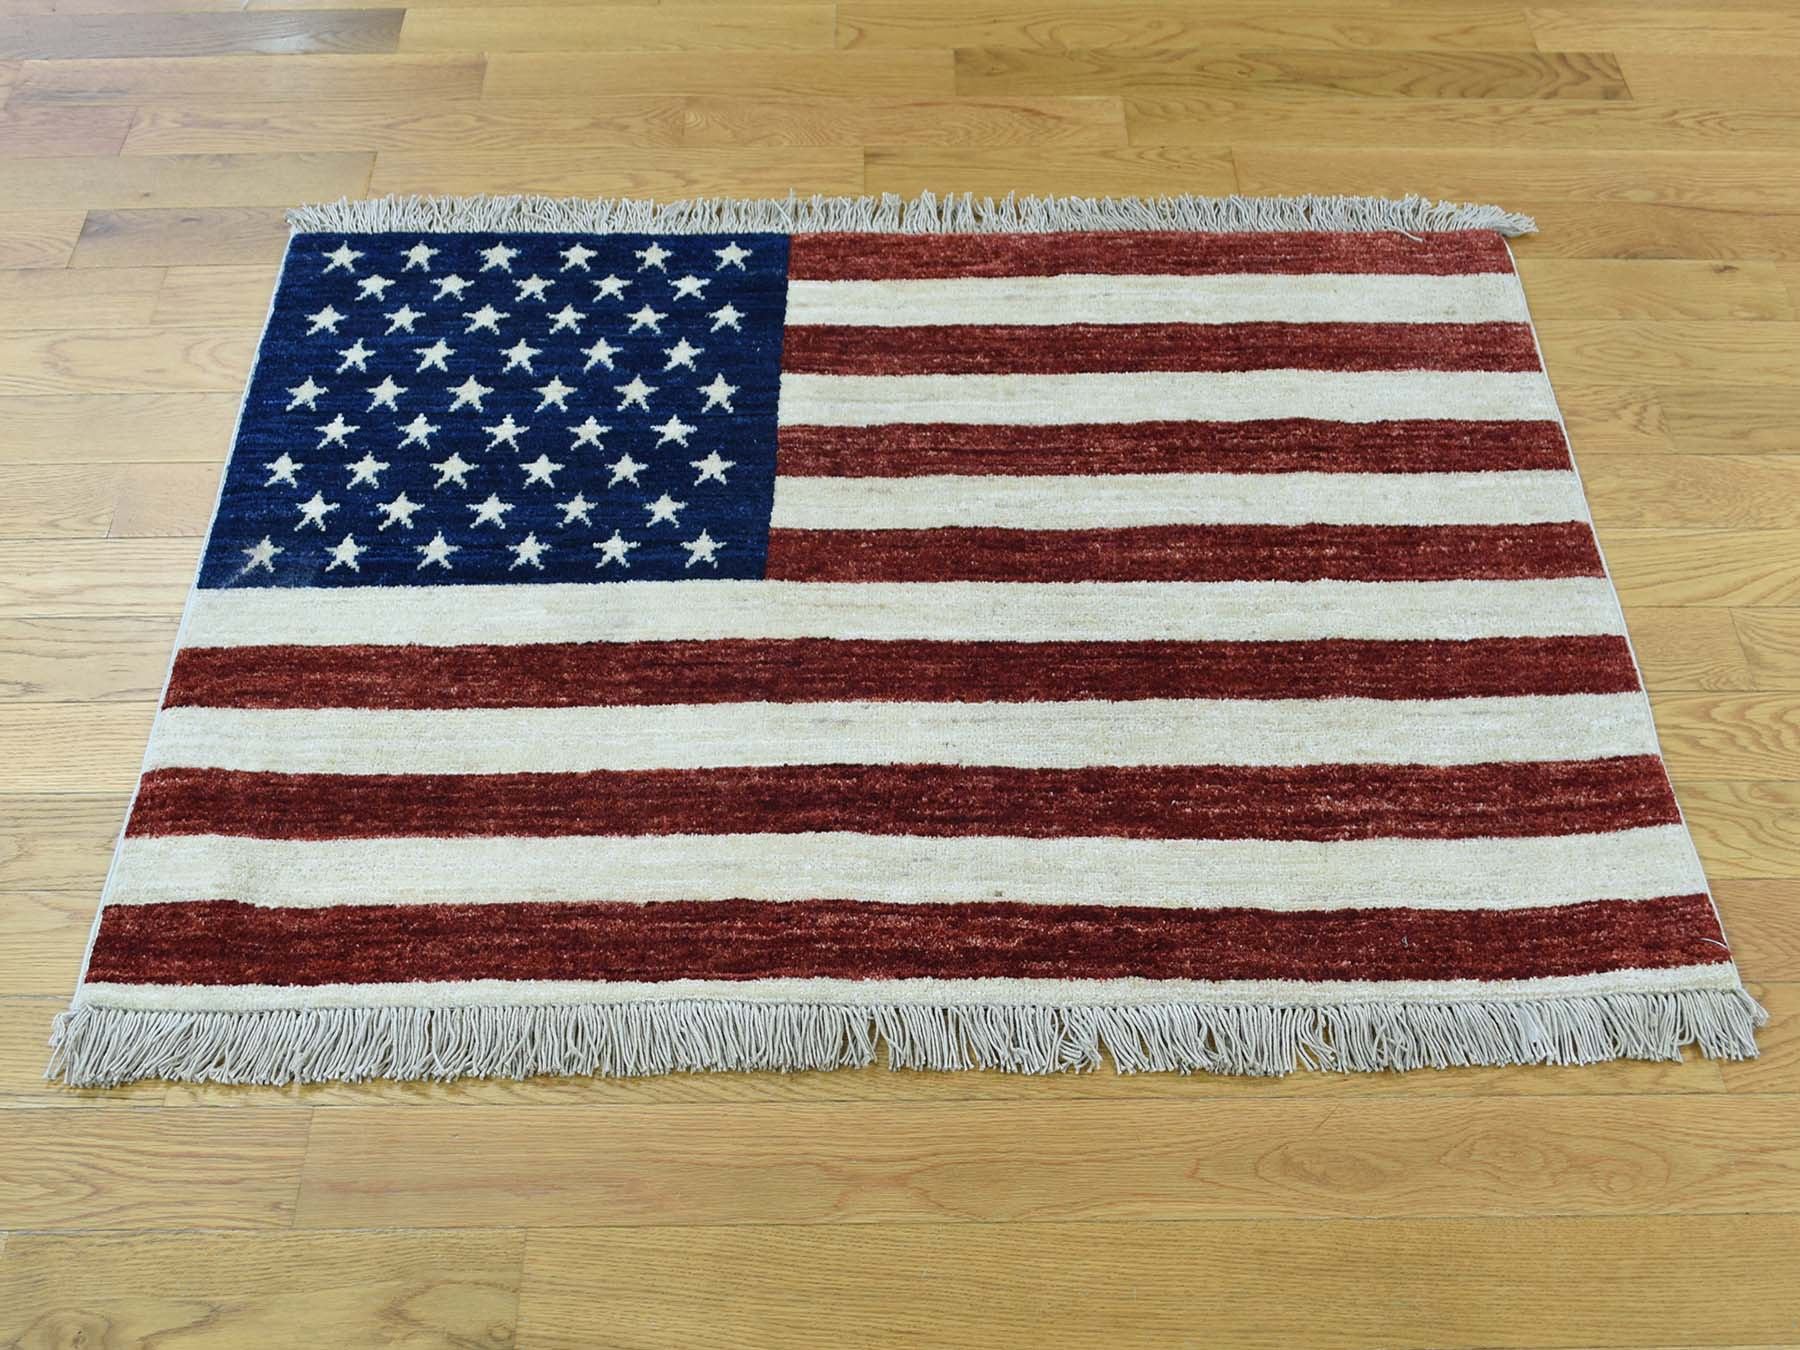 2-7 x3-10  Hand-Knotted Pure Wool Peshawar Quality American Flag Rug